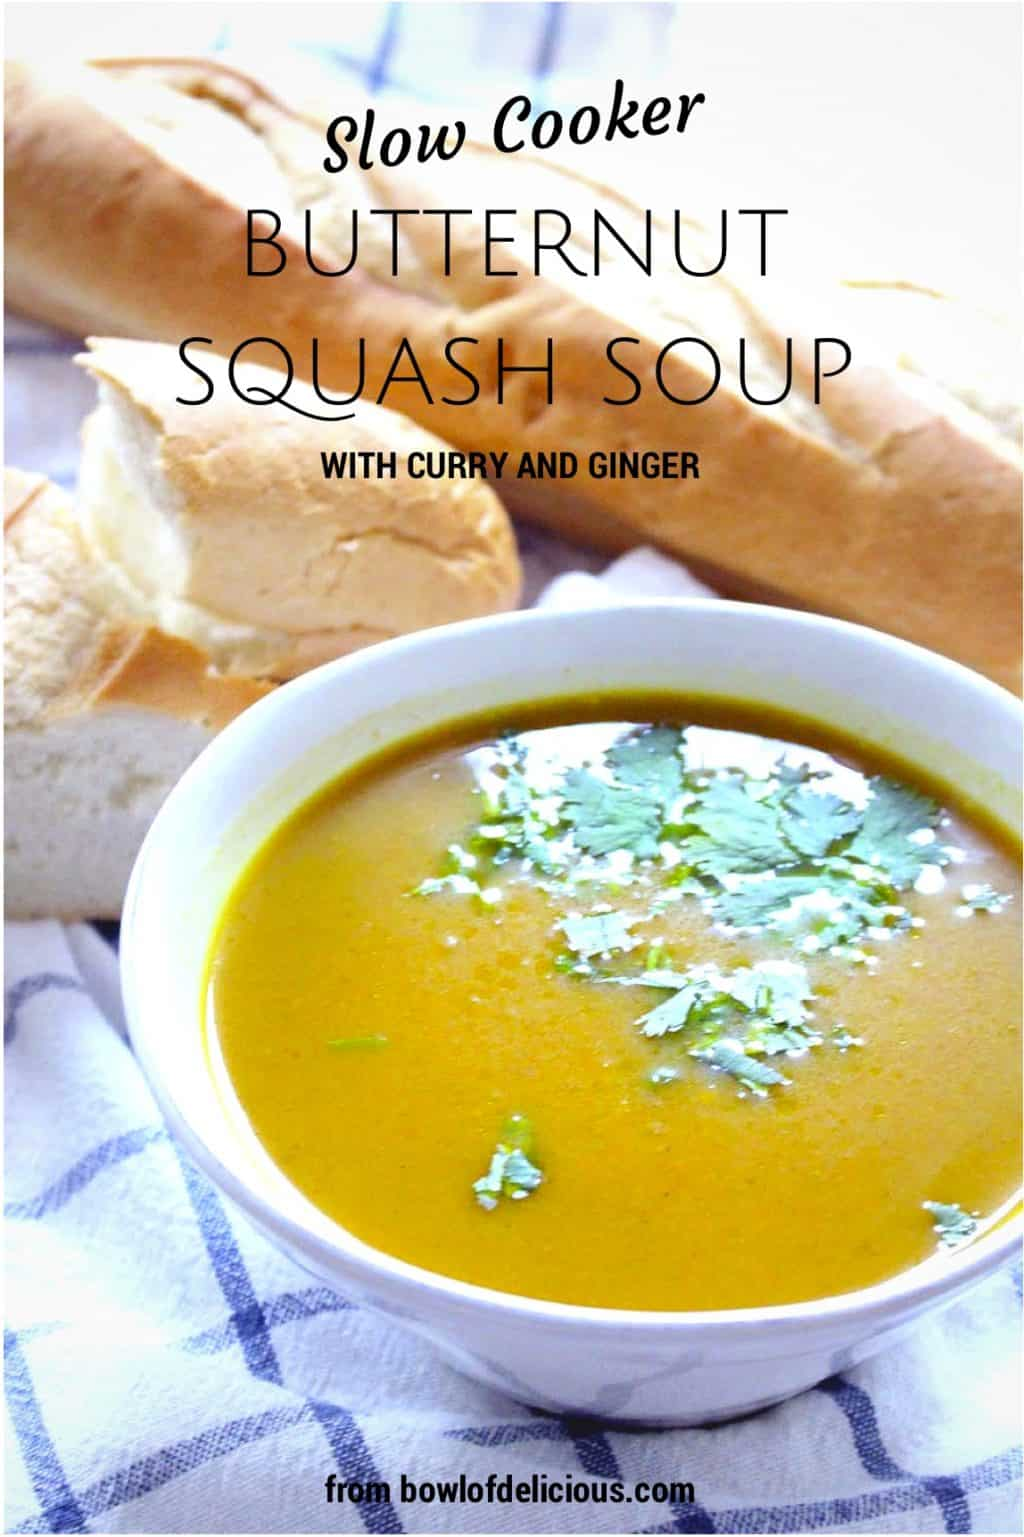 recipe: make slow cooker butternut squash soup [8]